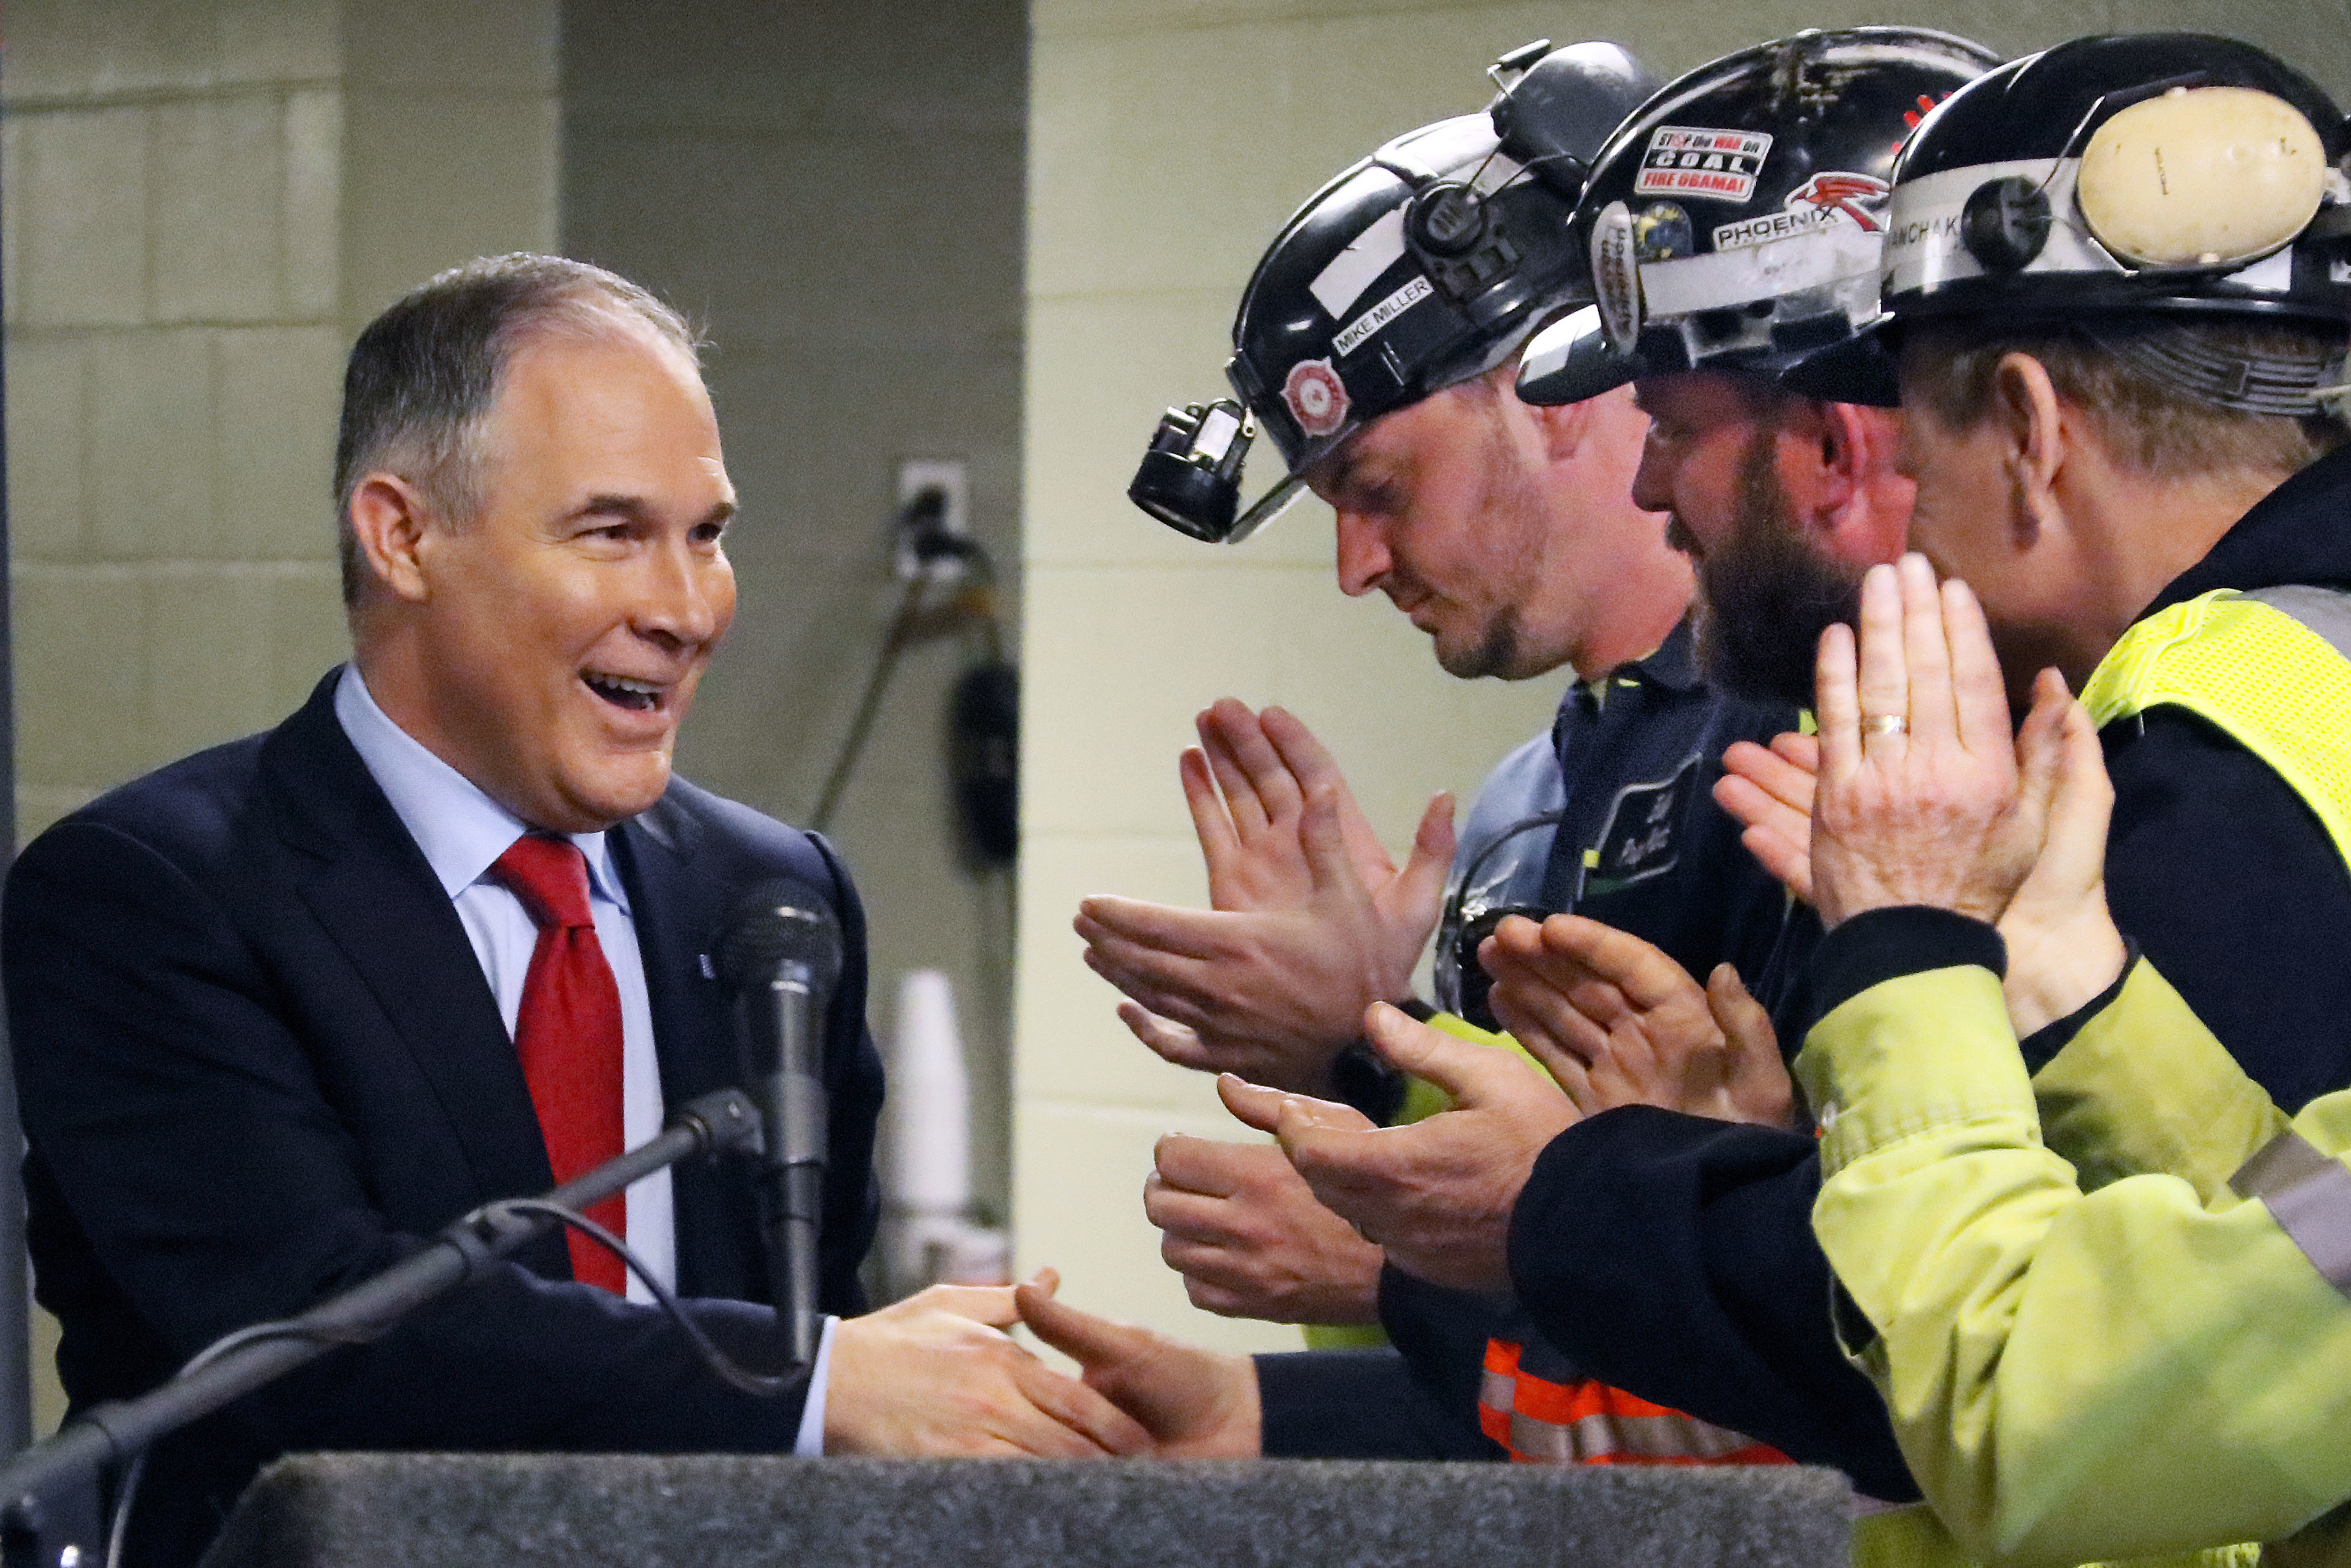 Pruitt EPA Coal Mine-2 U.S. Environmental Protection Agency Administrator Scott Pruitt, left, shakes hands with coal miners during a visit to Consol Pennsylvania Coal Company's Harvey Mine in Sycamore, Pa., Thursday, April 13, 2017. (AP Photo/Gene J. Puskar)